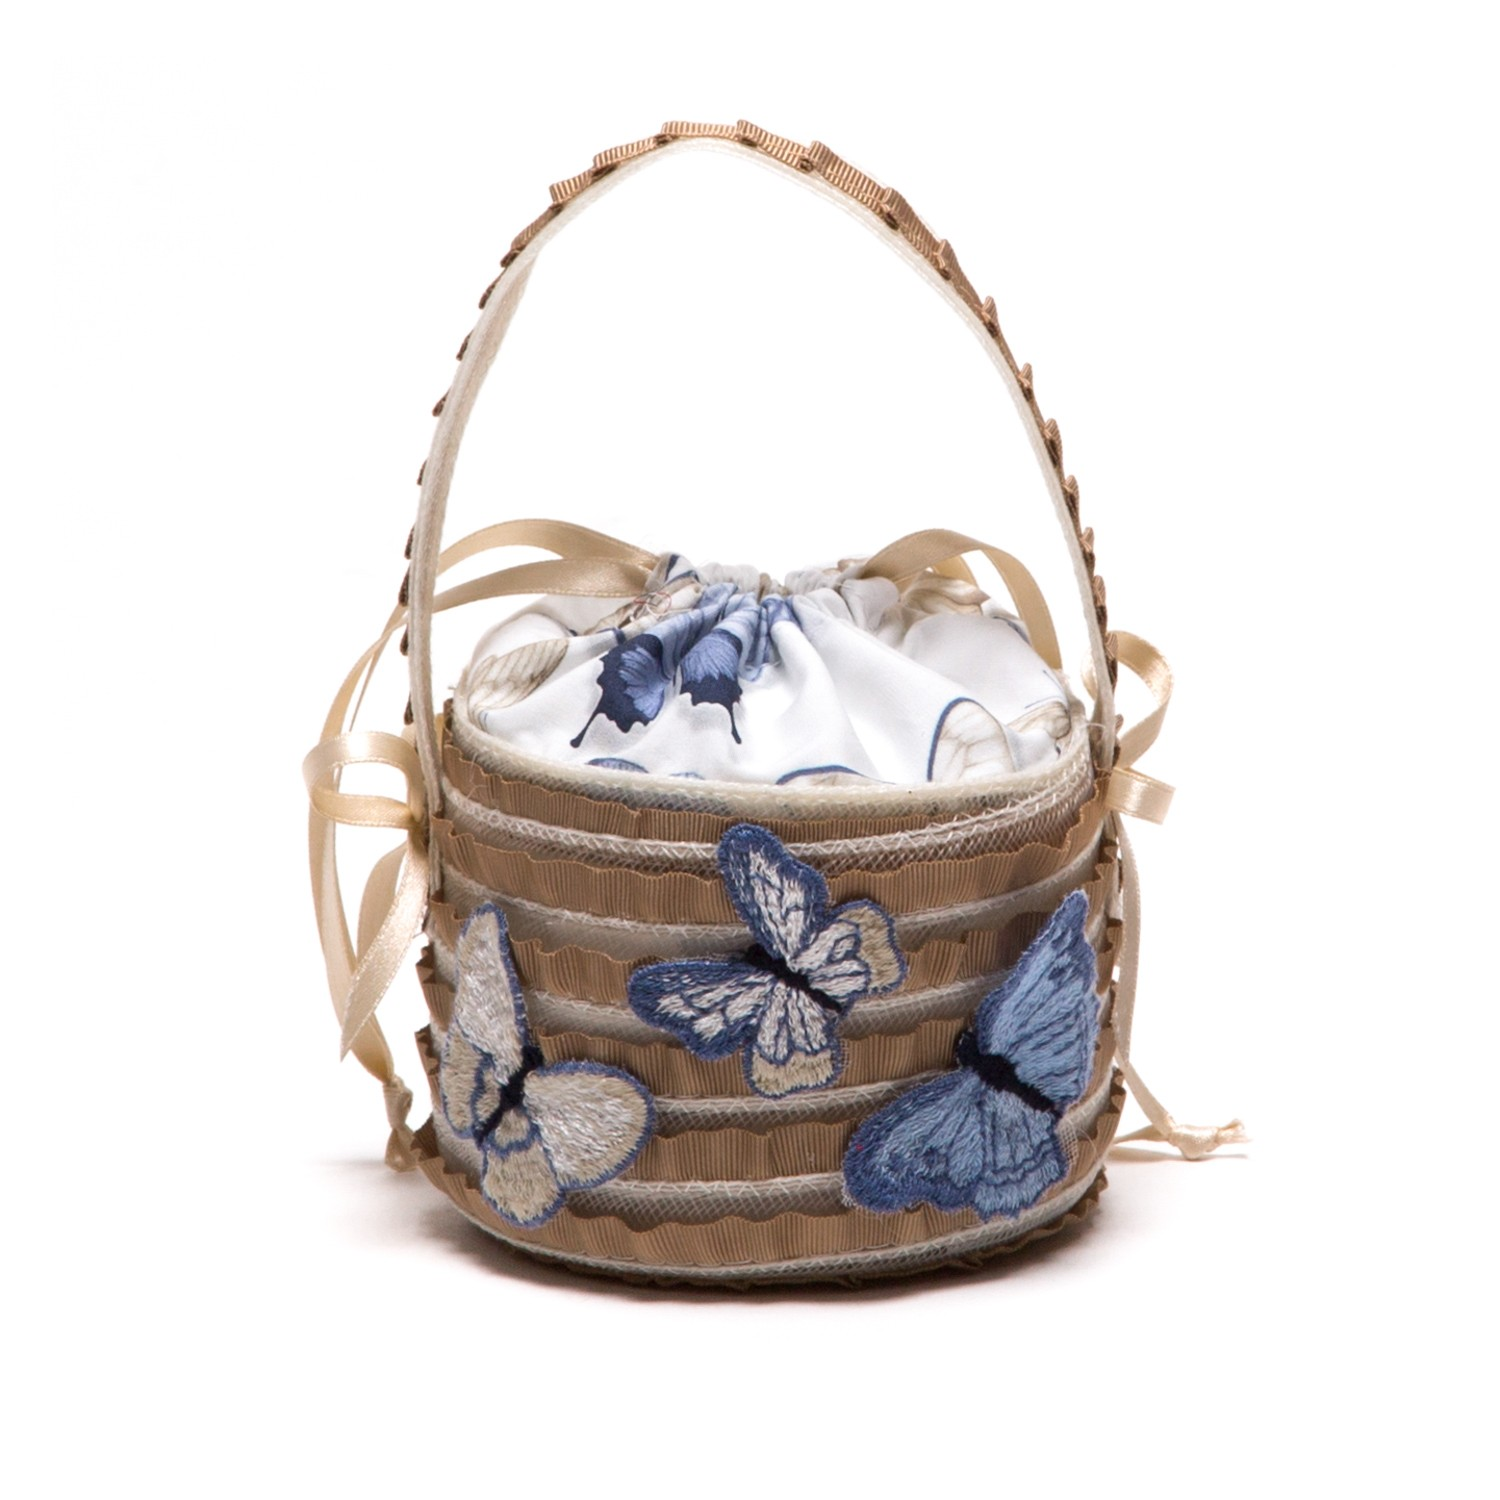 Monnalisa spring 2015, bag with butterflies